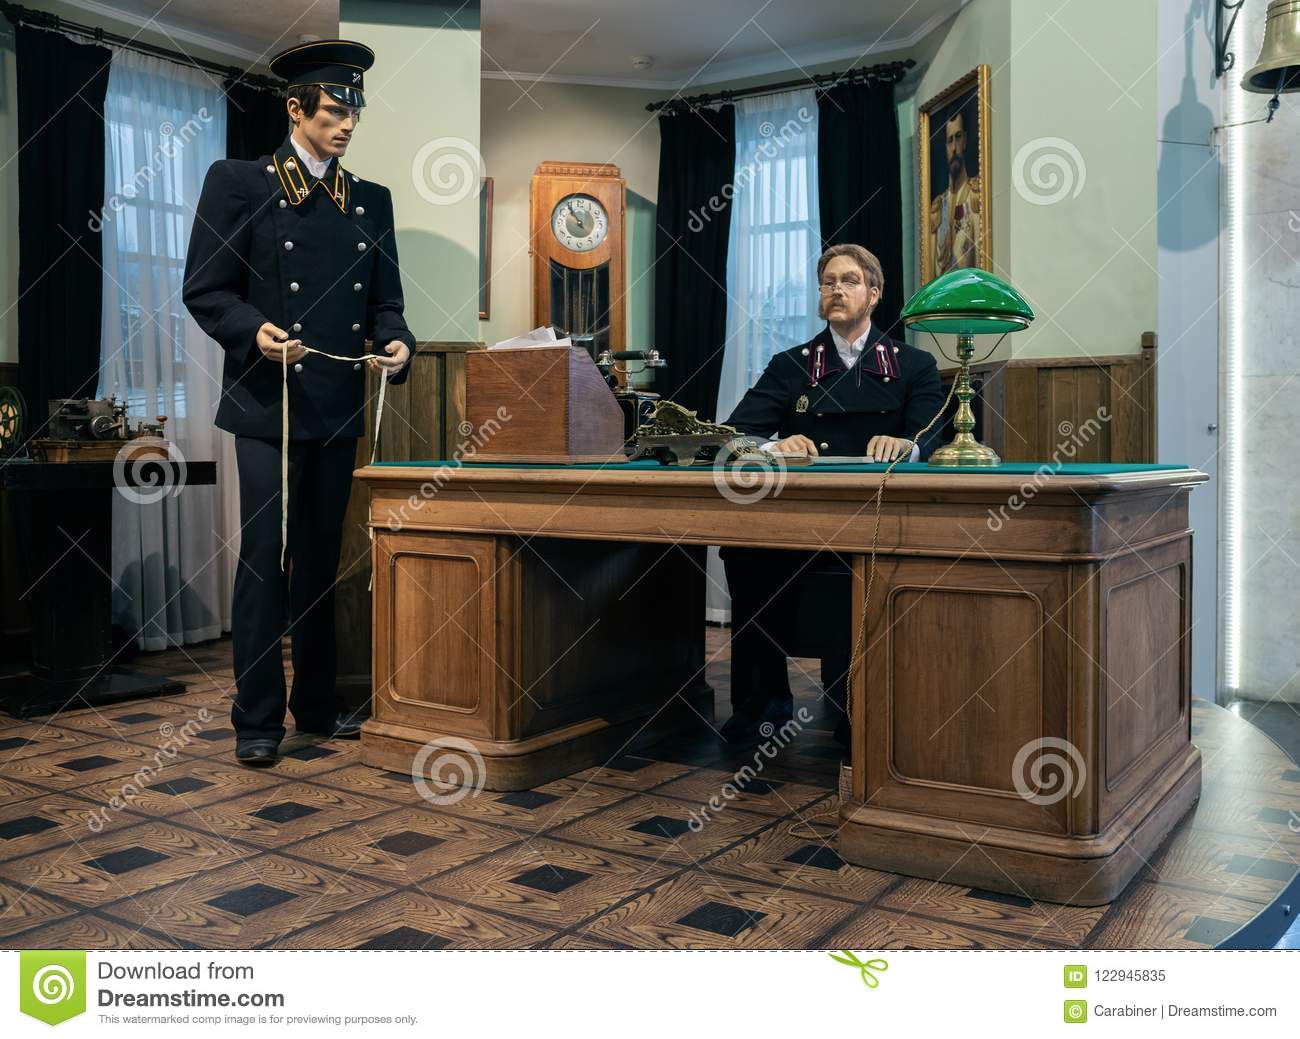 Century Office Office Chair Moscow Russia June 3 2018 Reconstruction Of The Events Of The 19th Century The Office Of The Railway Station In Russia Homeideasmagcom Reconstruction Of The Events Of The 19th Century The Office Of